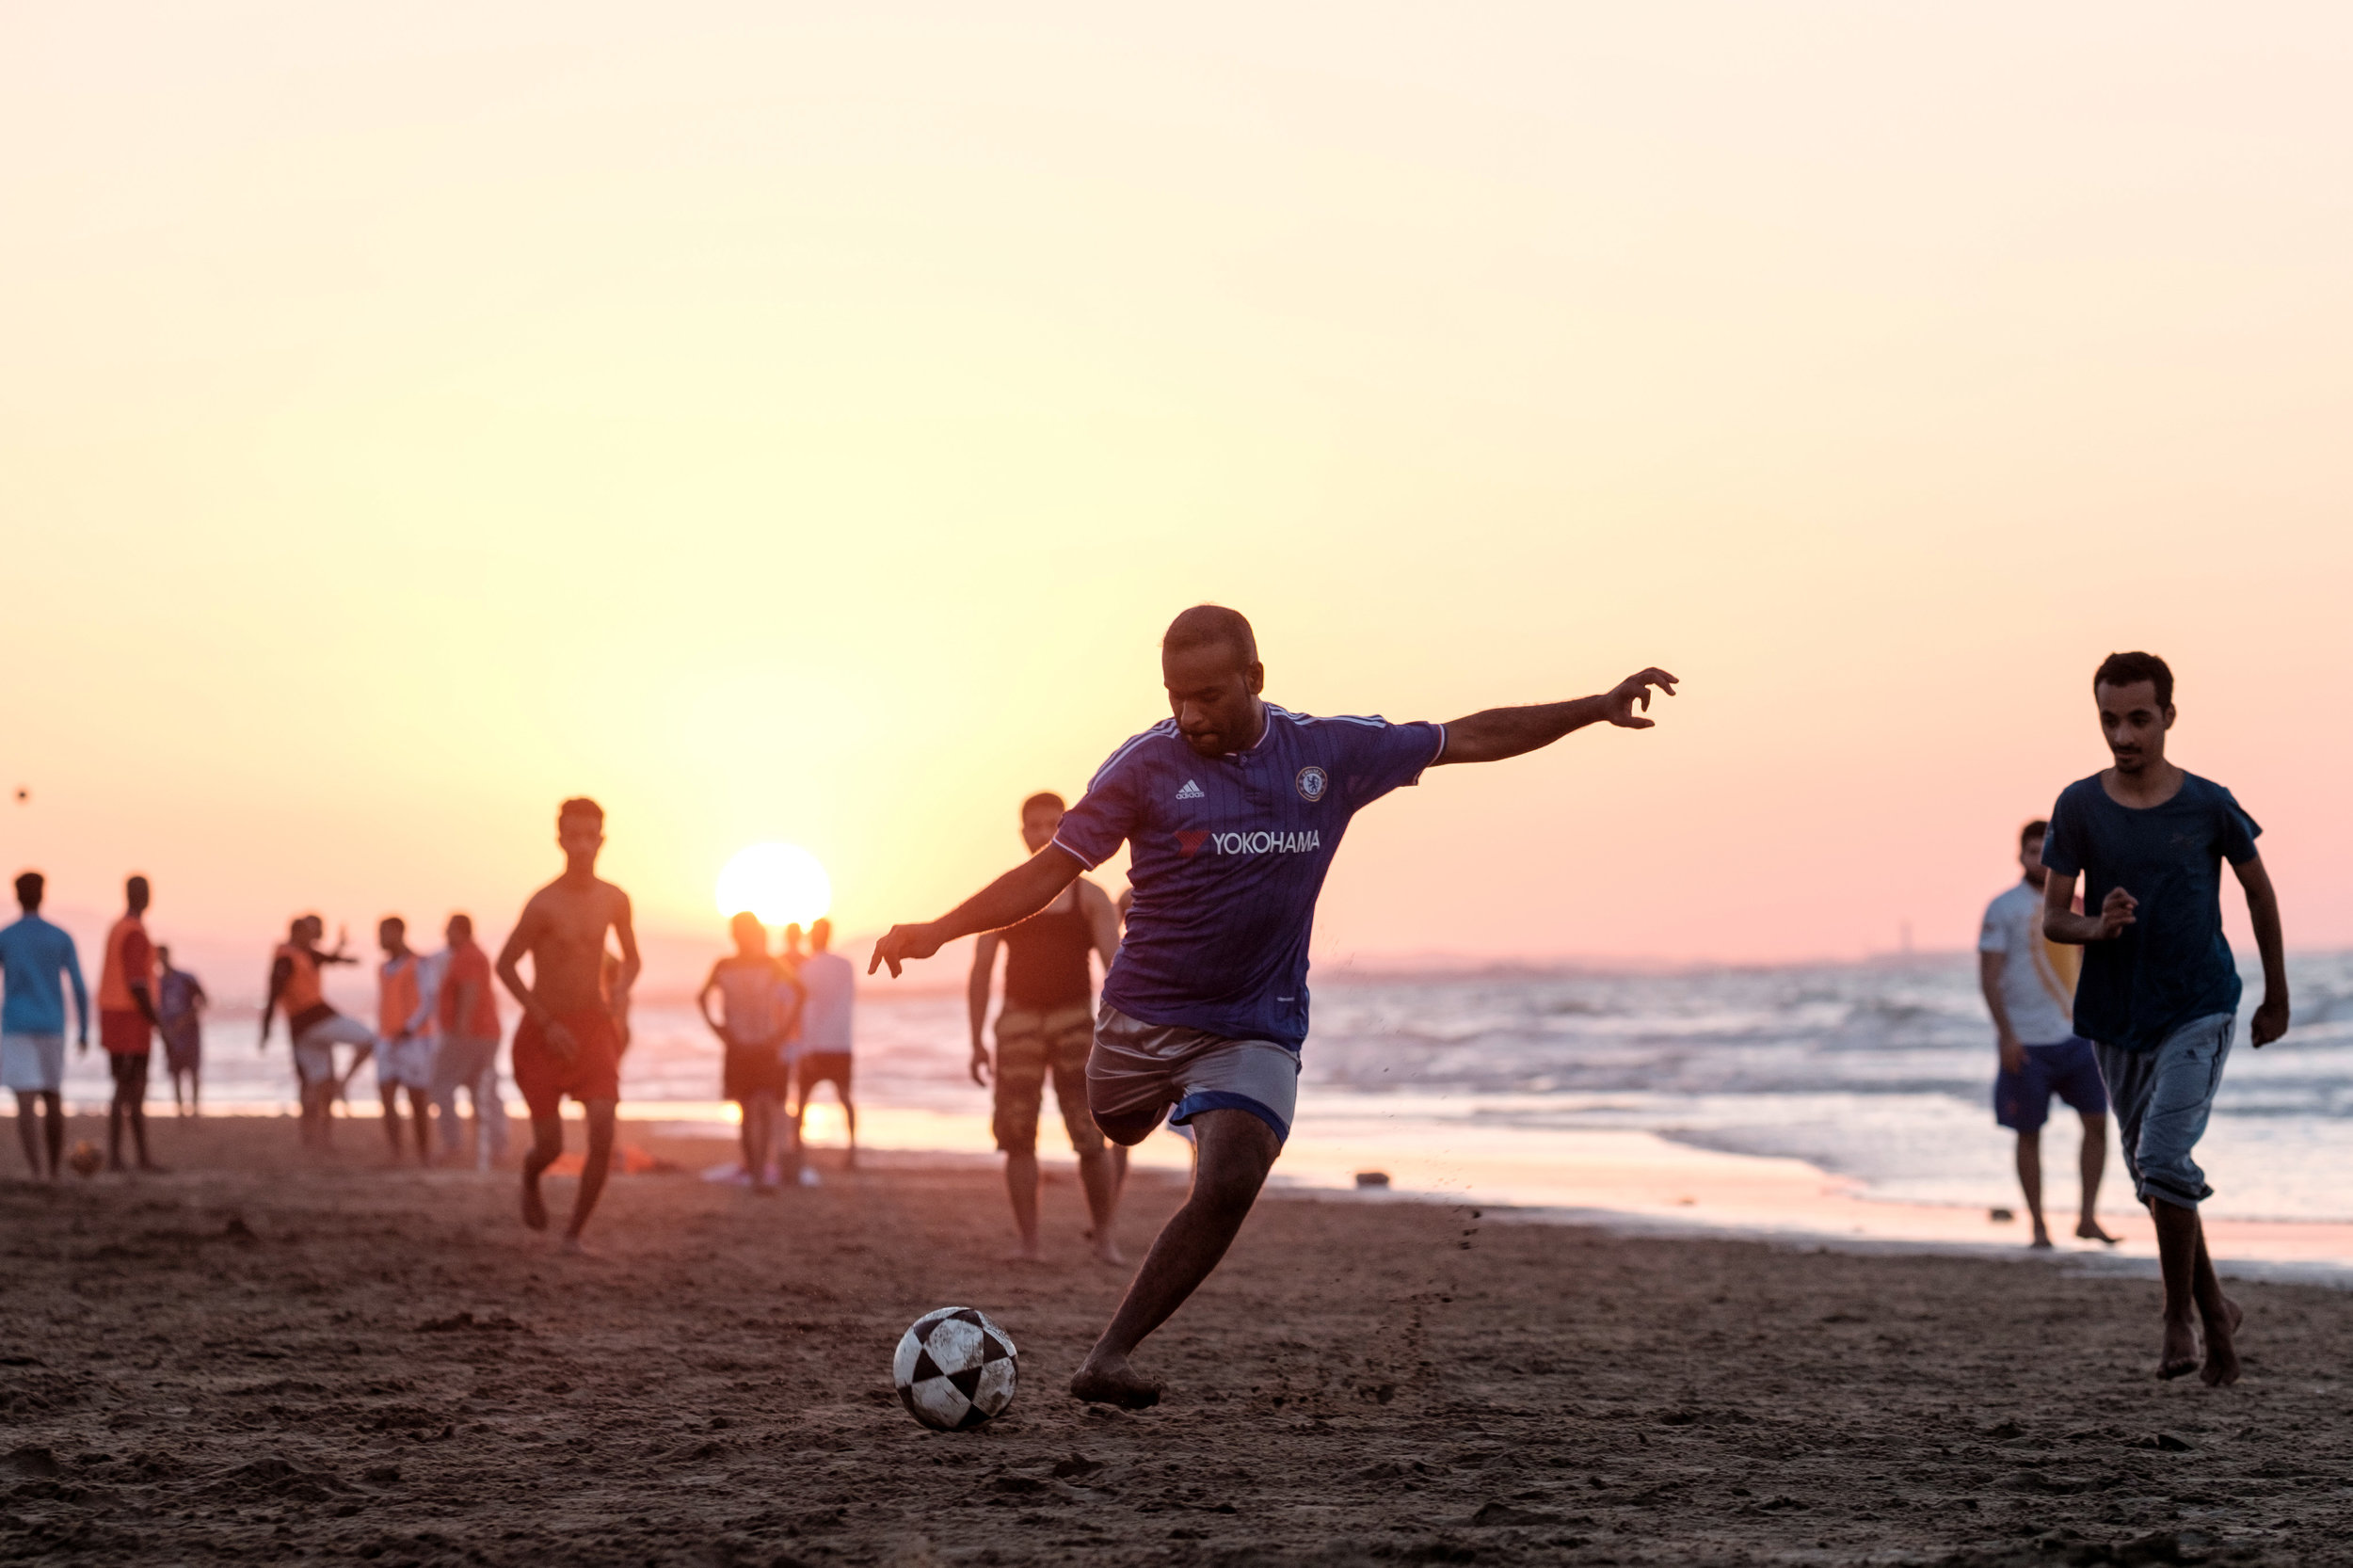 Soccer on the beach in Muscat